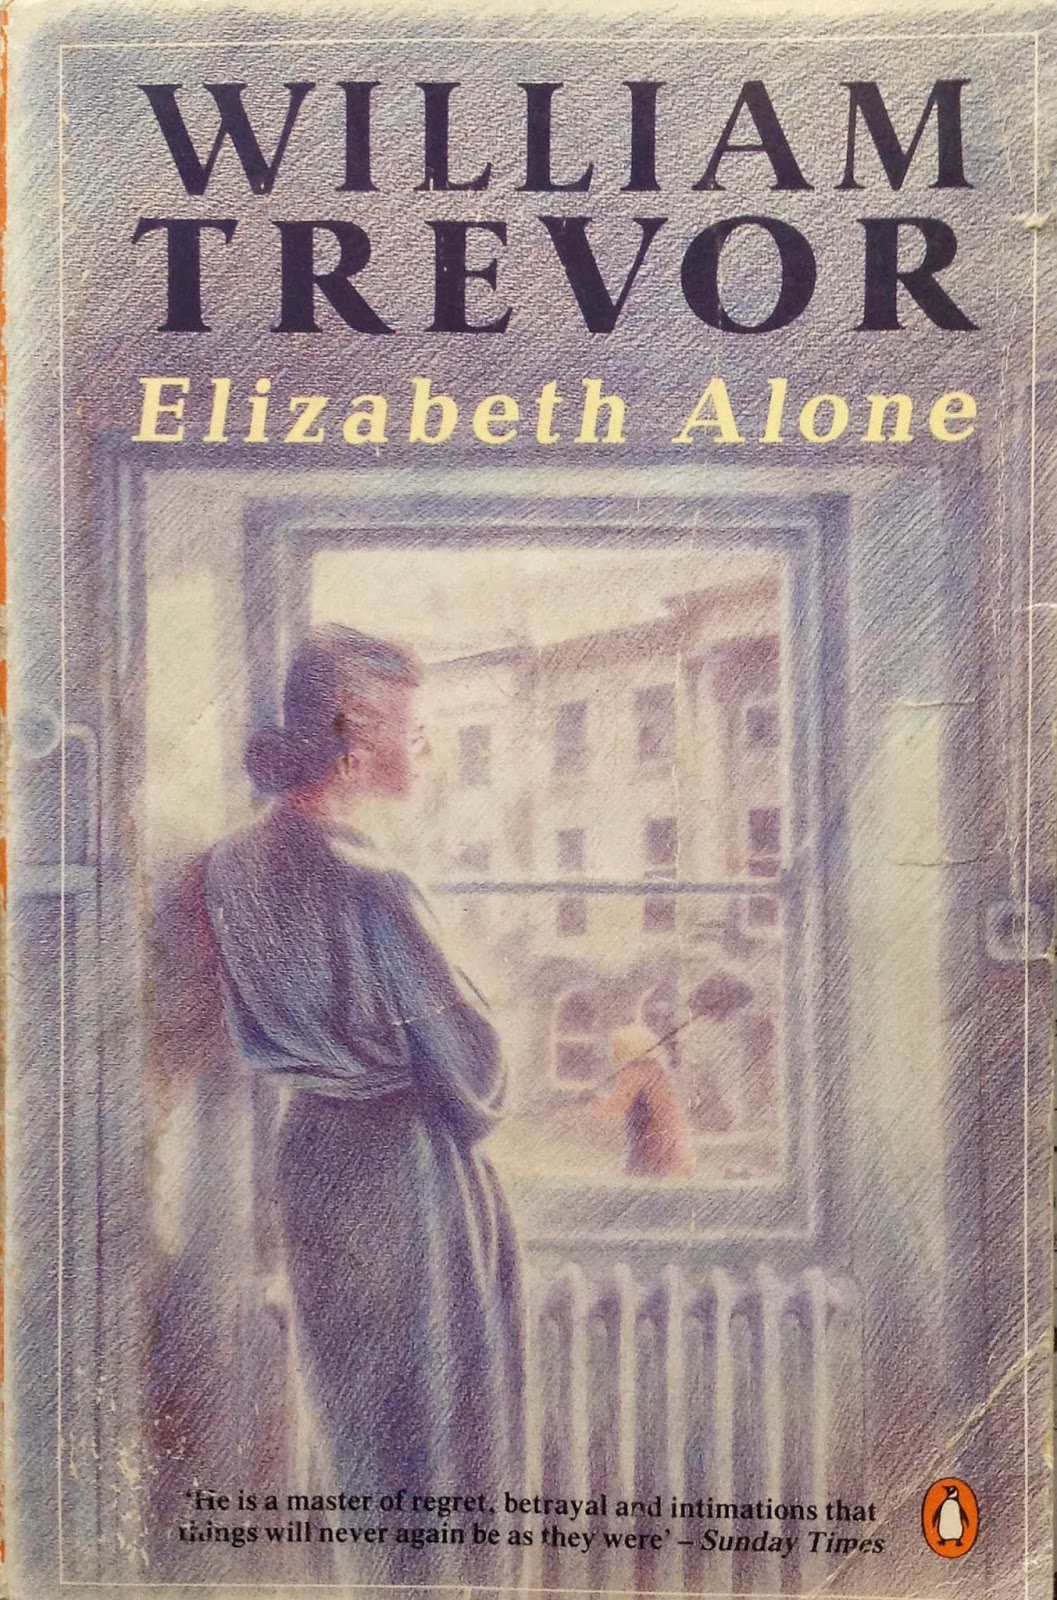 vinod ekbote  my next buy was a title by yet another writer whose writing makes me buy everything he has written so far i found elizabeth alone by william trevor which